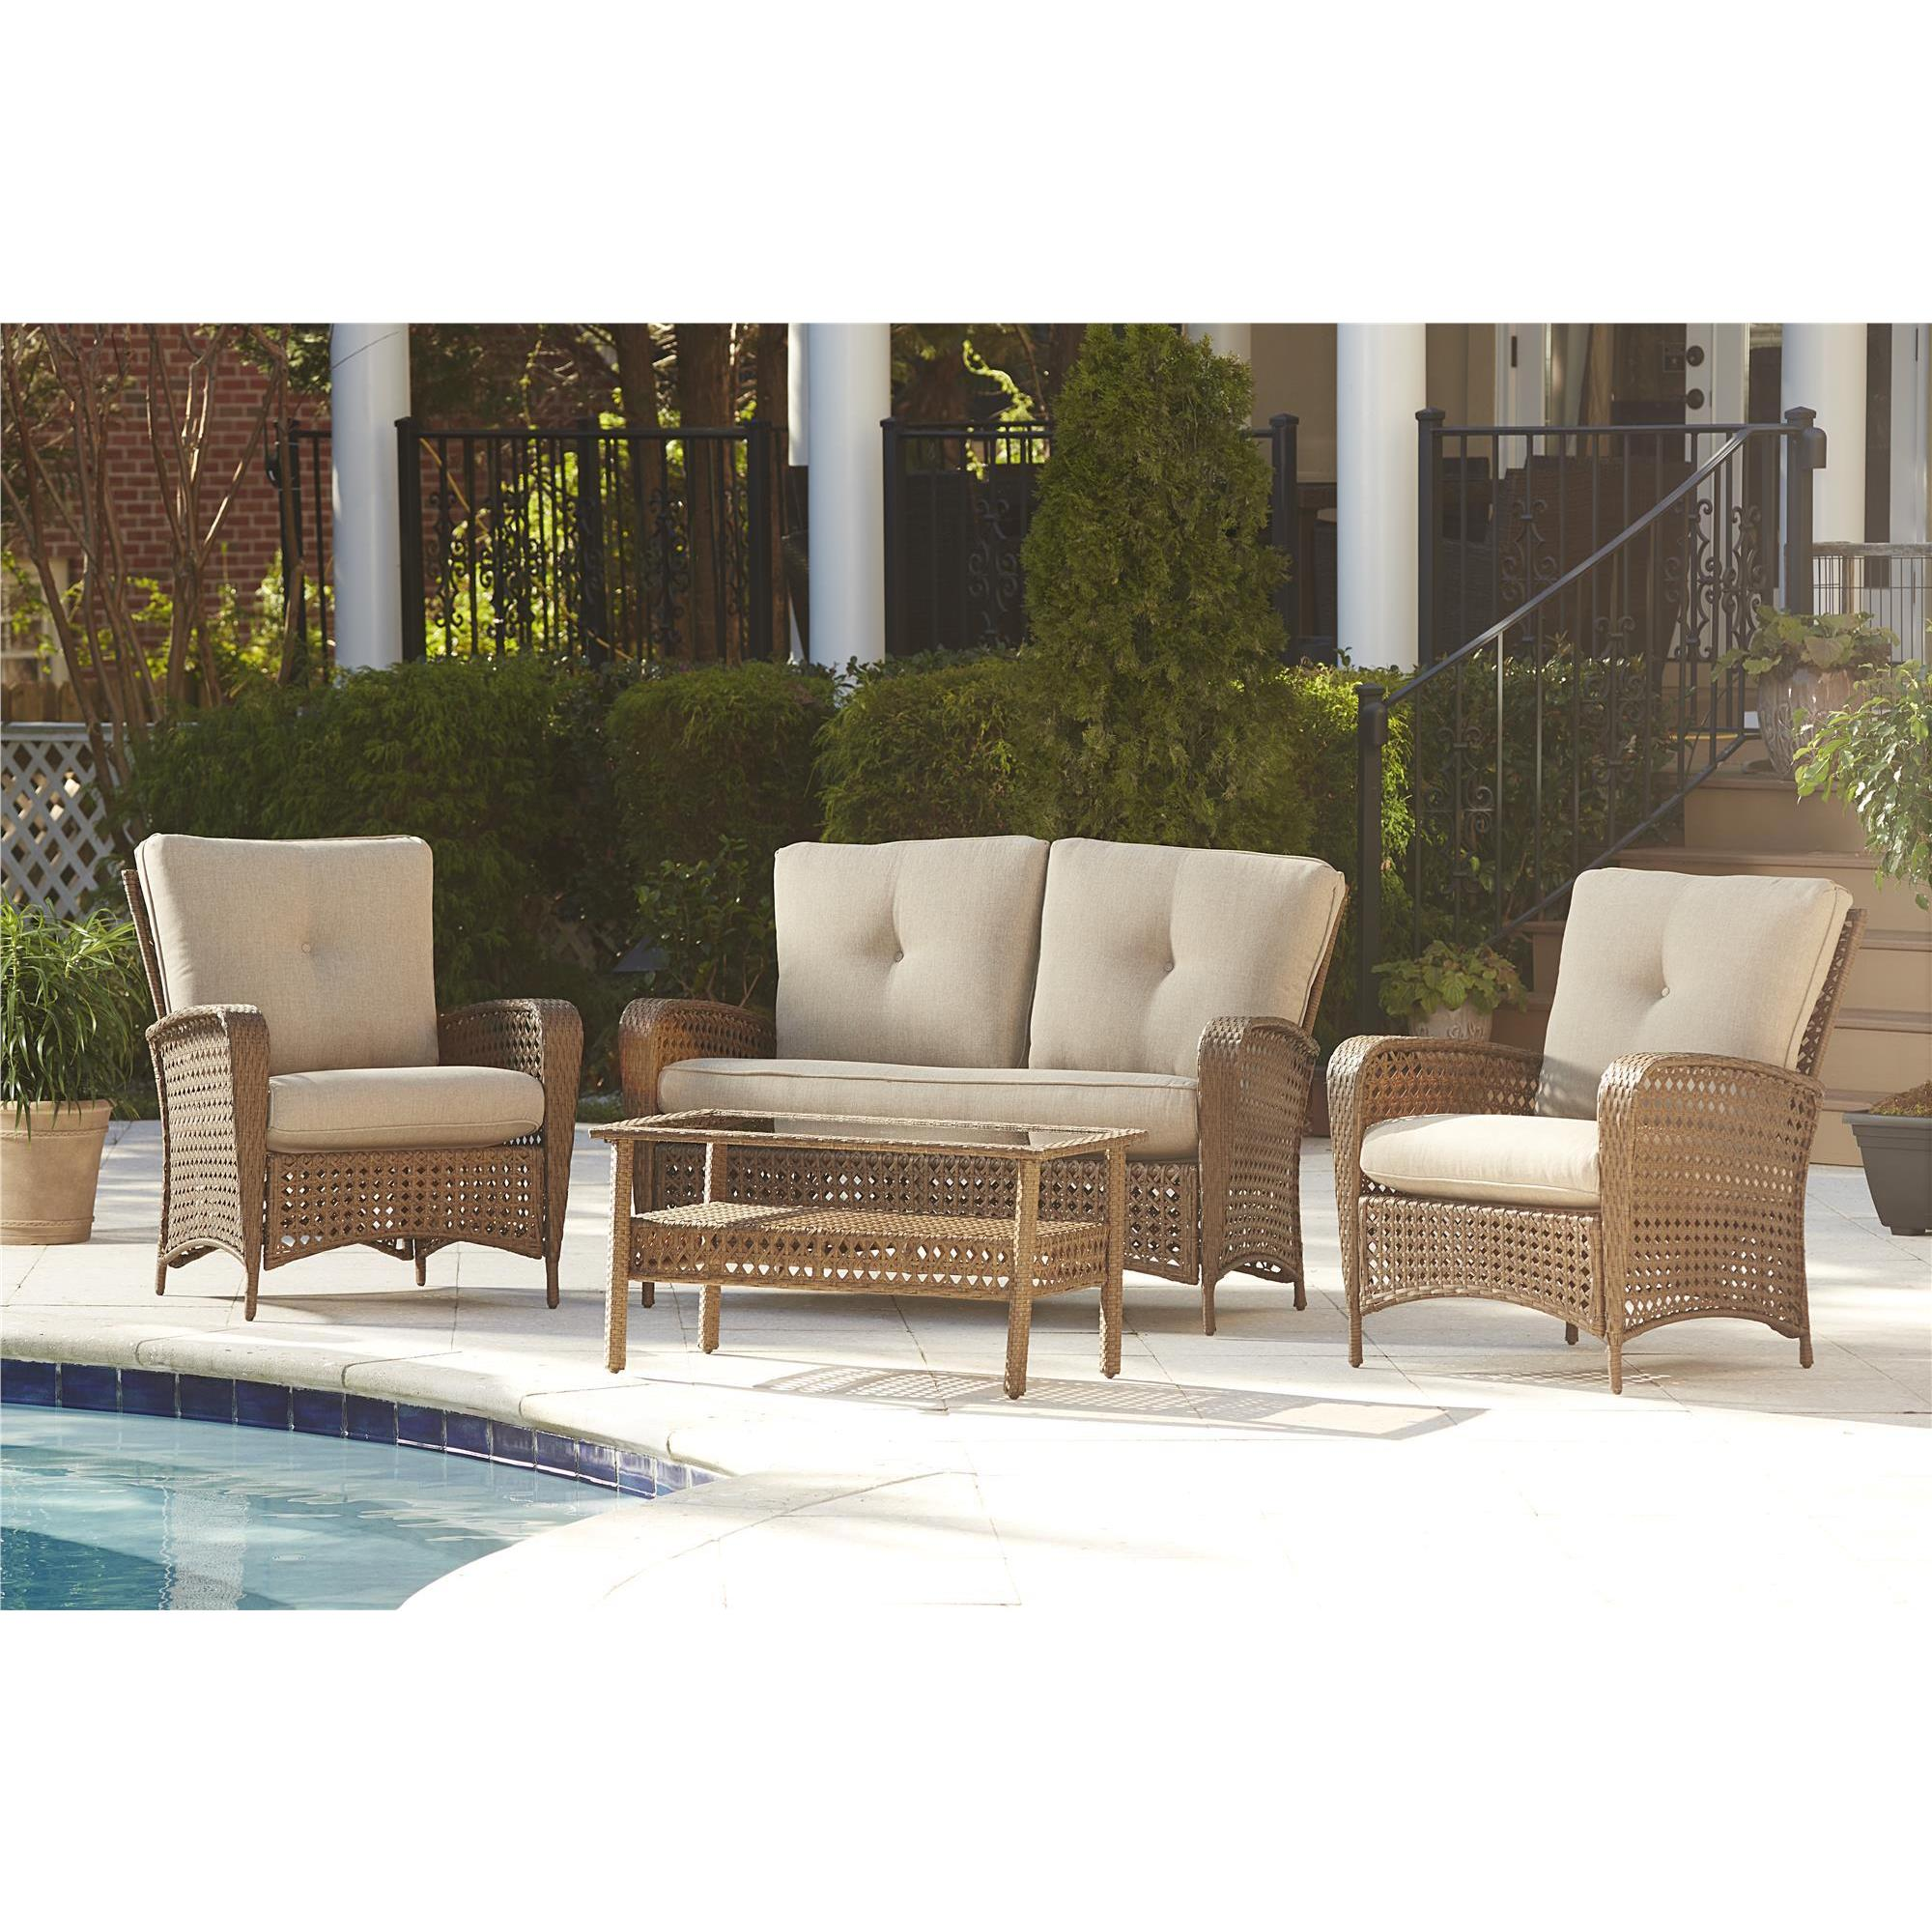 Cosco Outdoor Steel Woven Wicker Patio Conversation Set with